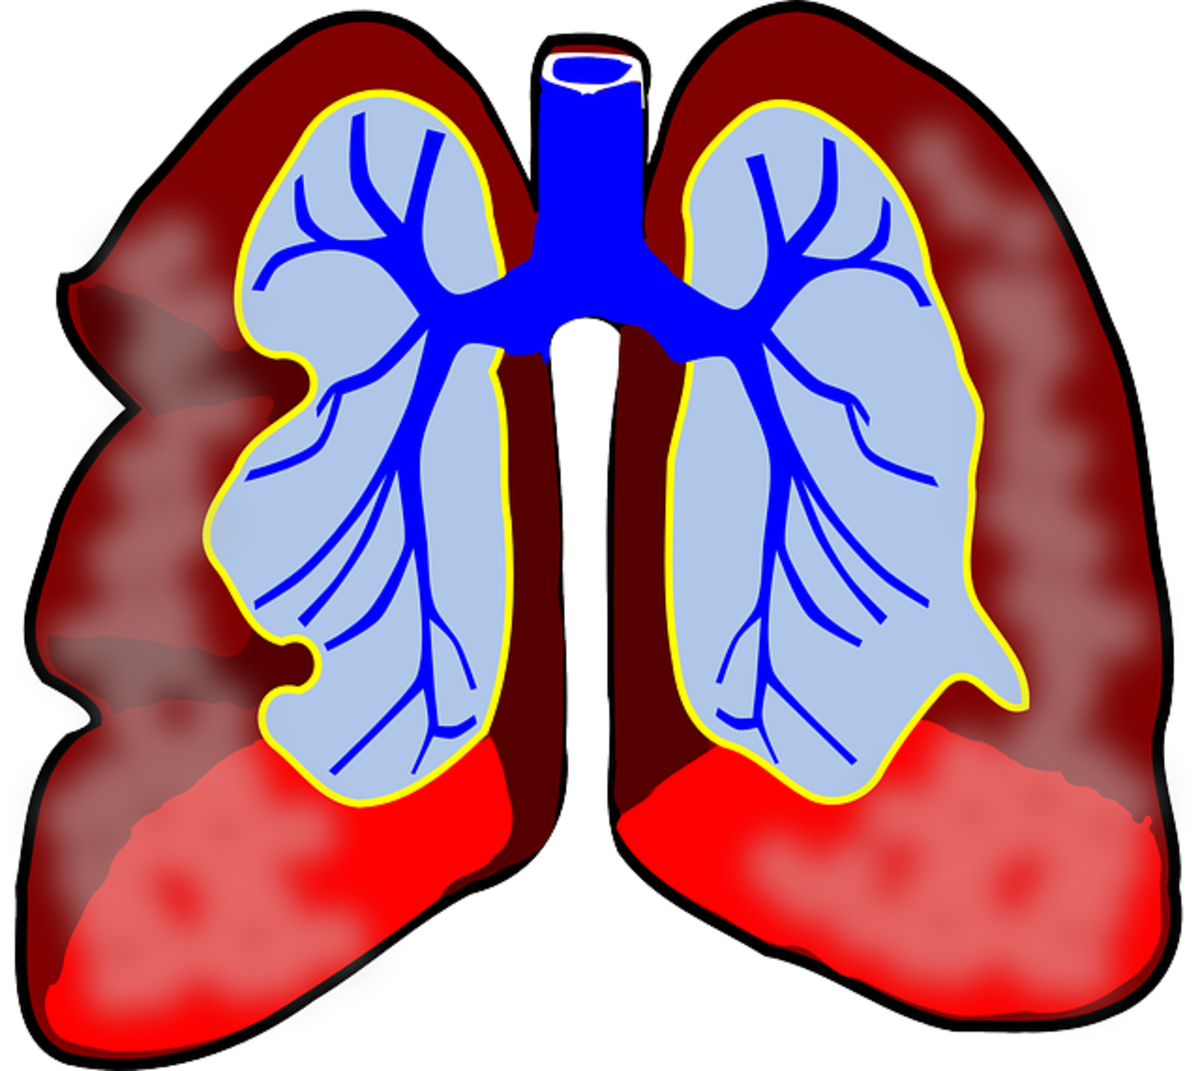 These are the lungs.  The diaphragm rests right below the lungs.  Expansion is needed upon inhalation to fill the lungs with adequate amounts of air.